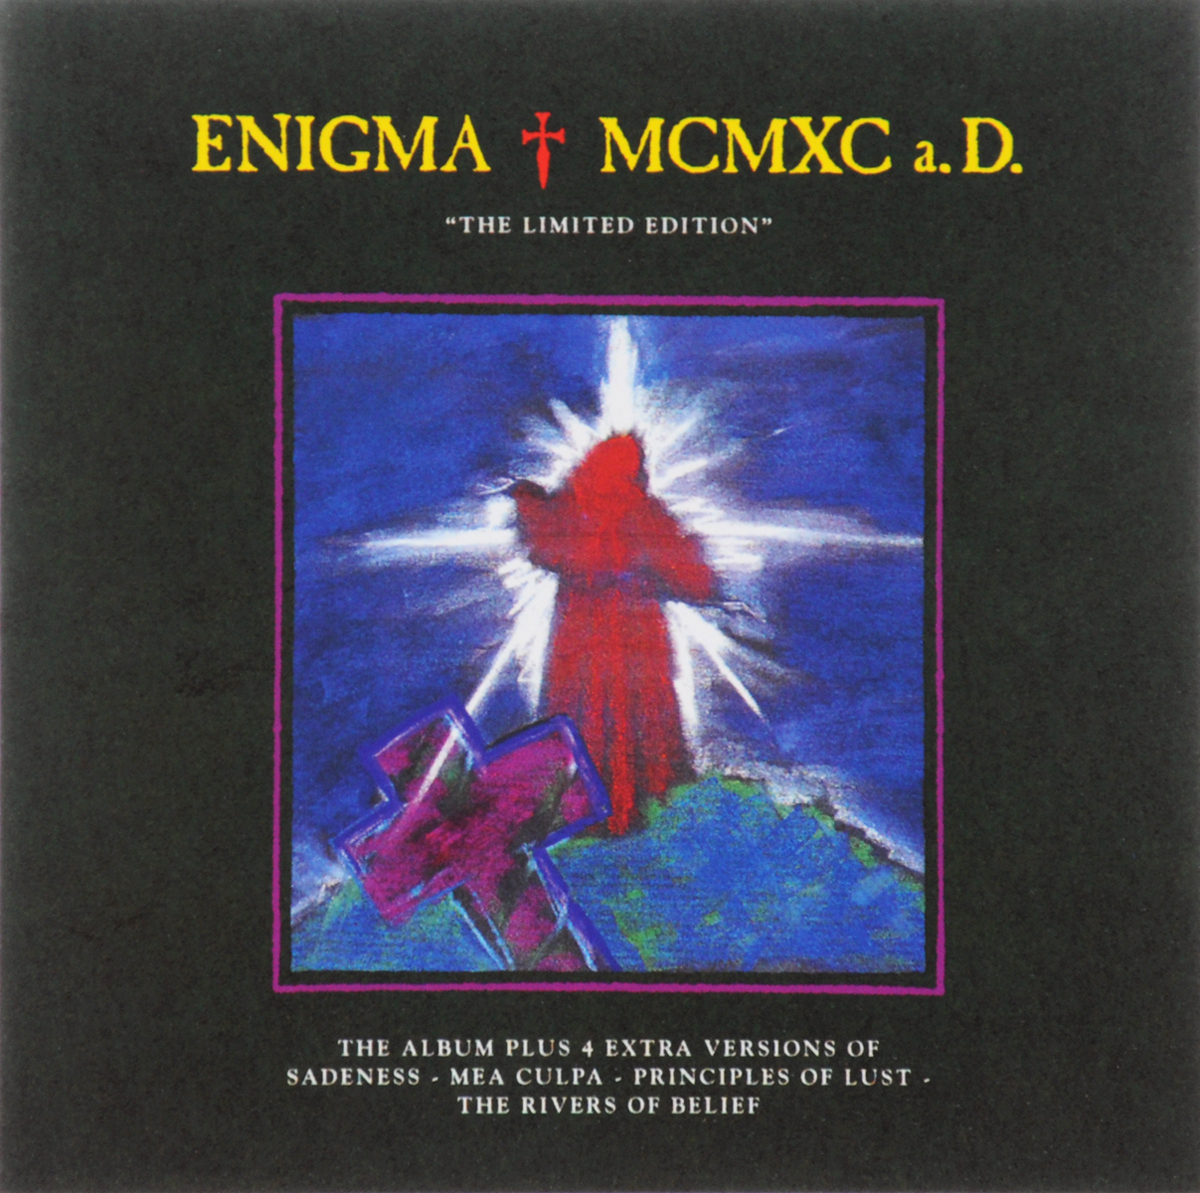 Enigma Enigma. MCMXC A.D. The Limited Edition robert ludlum s the bourne enigma